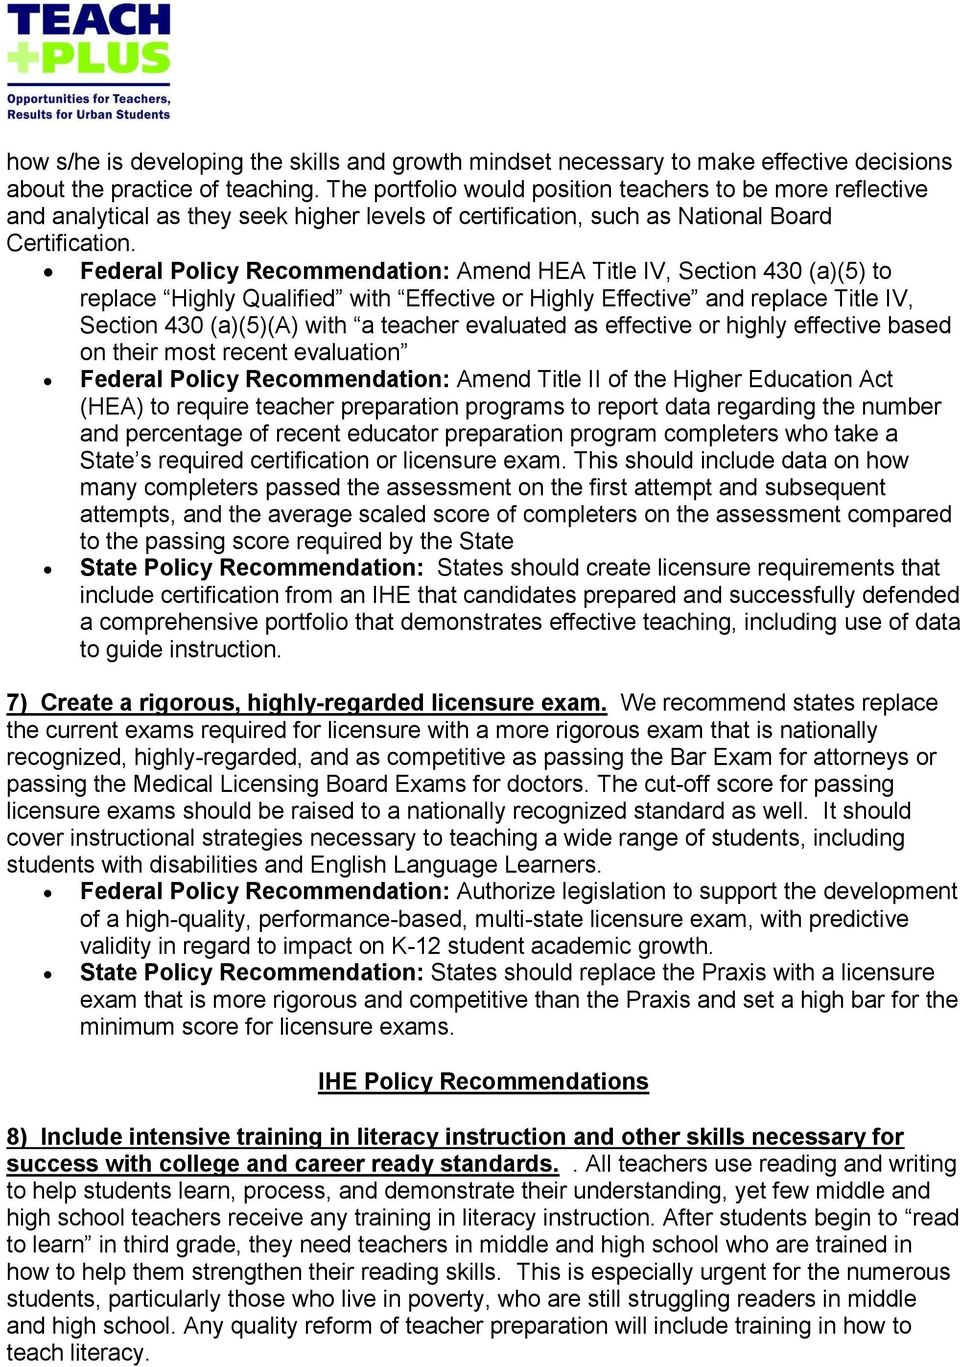 Federal Policy Recommendation: Amend HEA Title IV, Section 430 (a)(5) to replace Highly Qualified with Effective or Highly Effective and replace Title IV, Section 430 (a)(5)(a) with a teacher